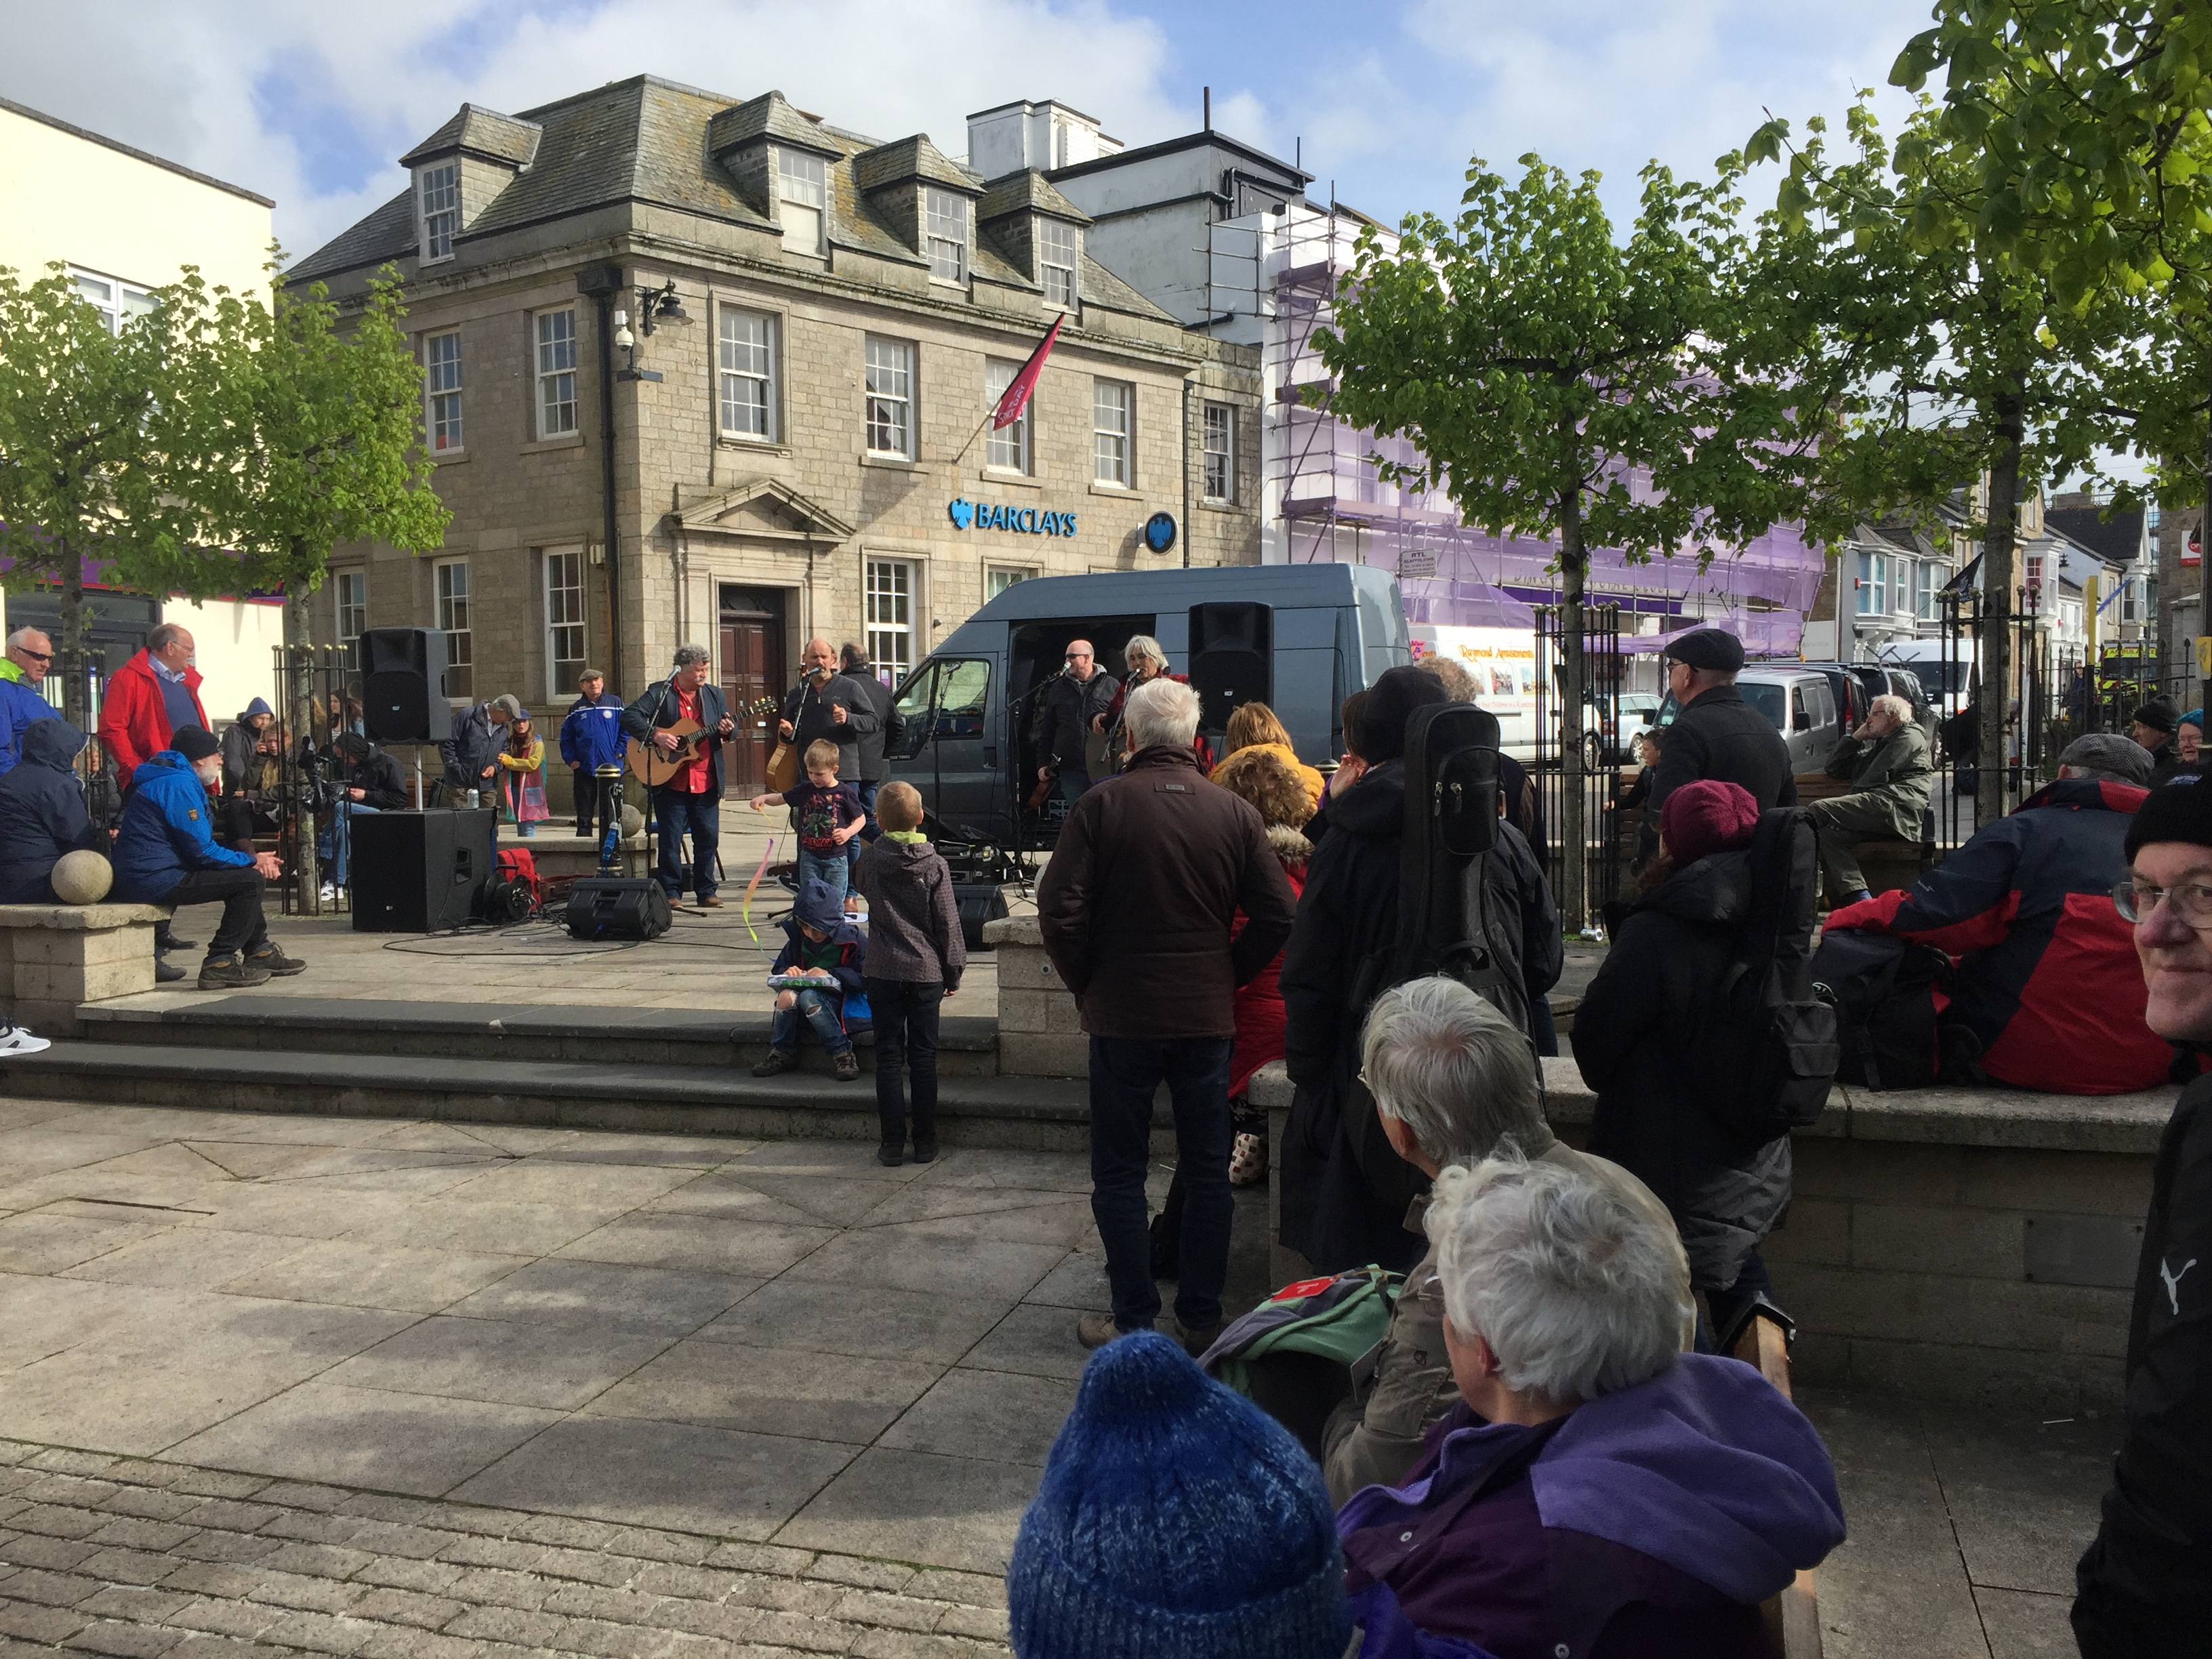 TREVITHICK DAY CAMBORNE 2019